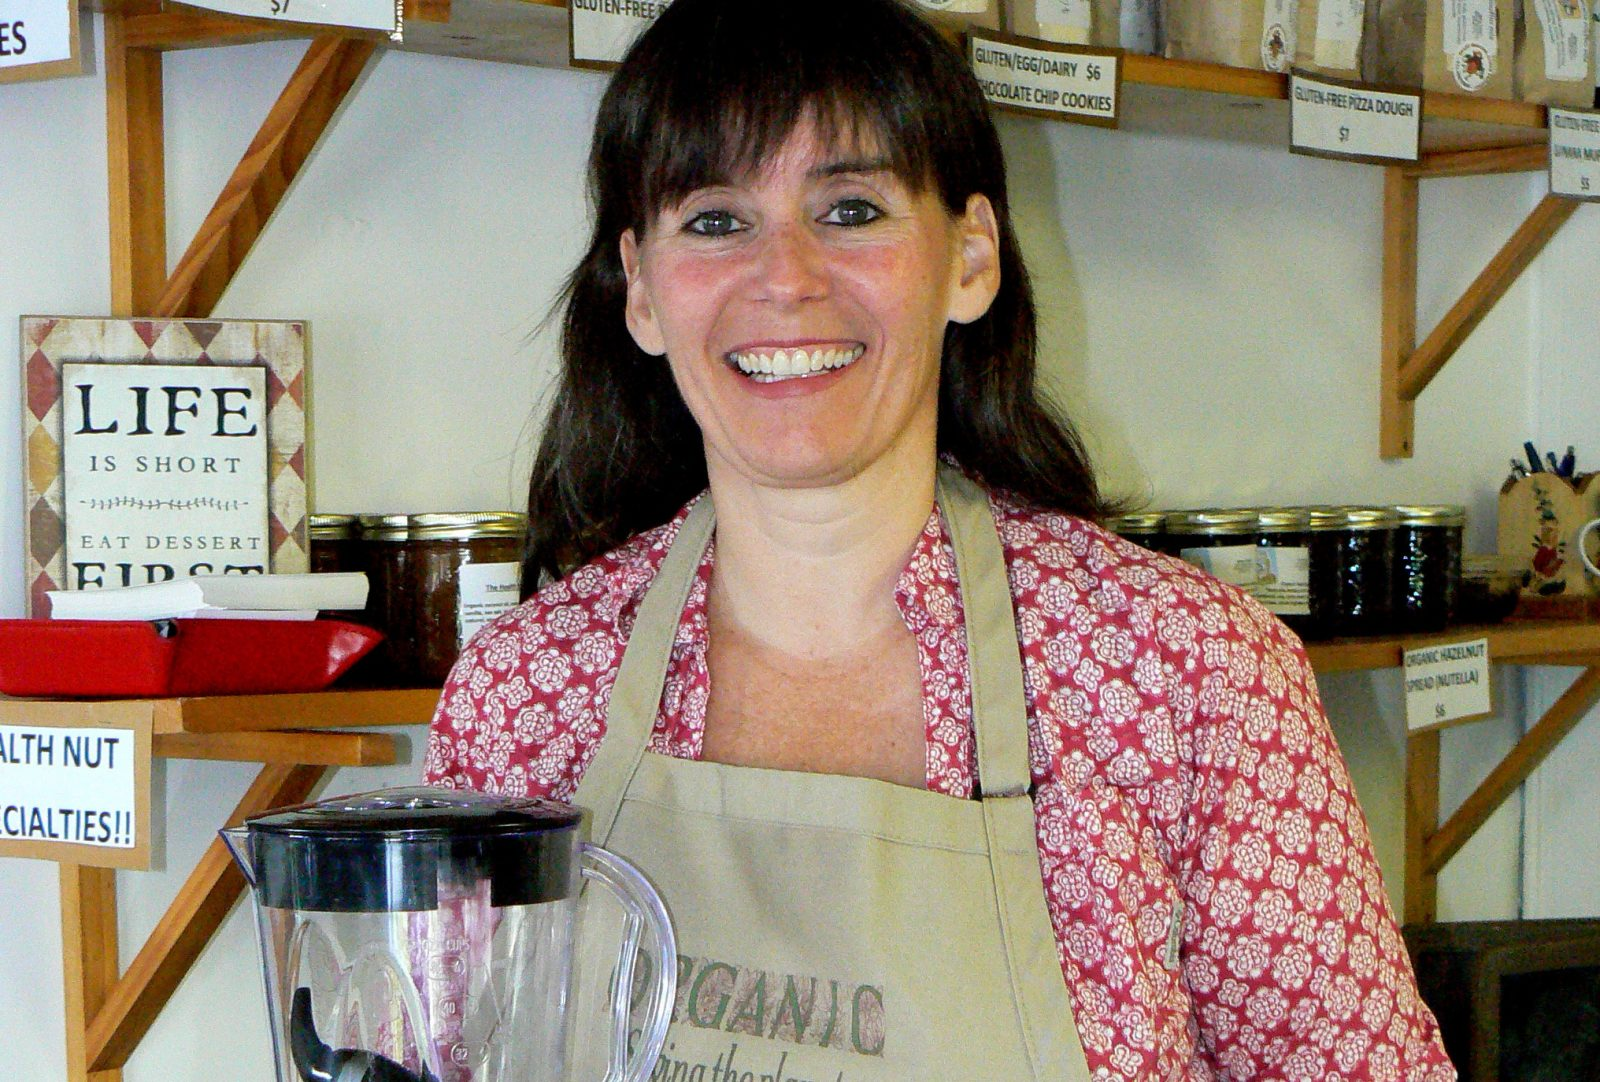 Local 'health nut' turns passion into small business